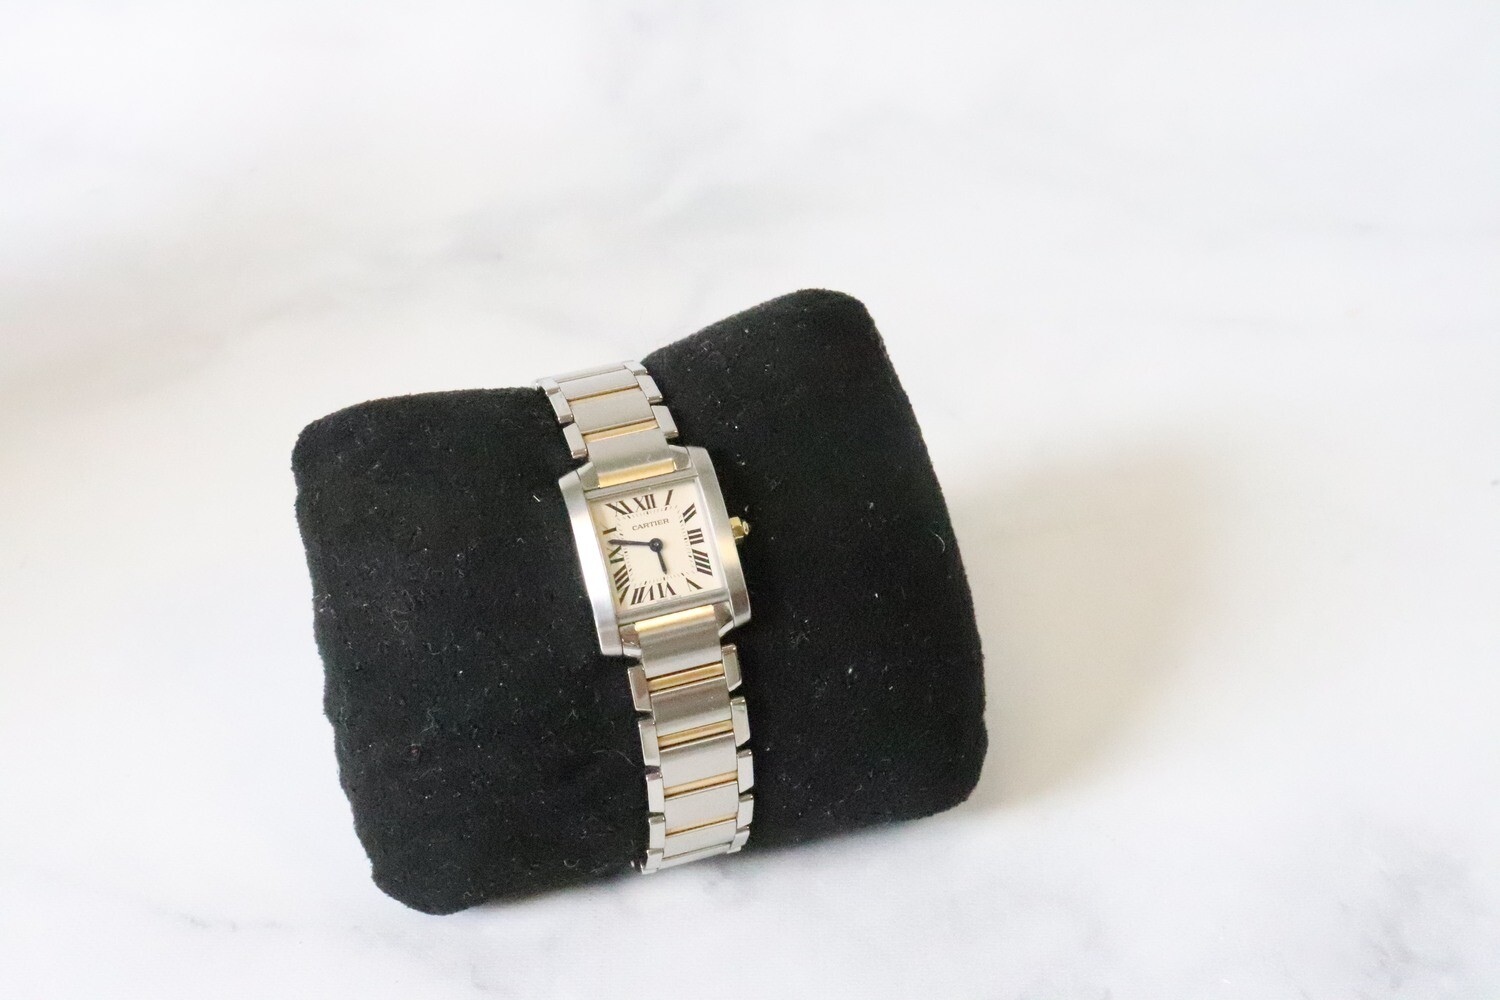 Cartier Tank Watch, Preowned in Box